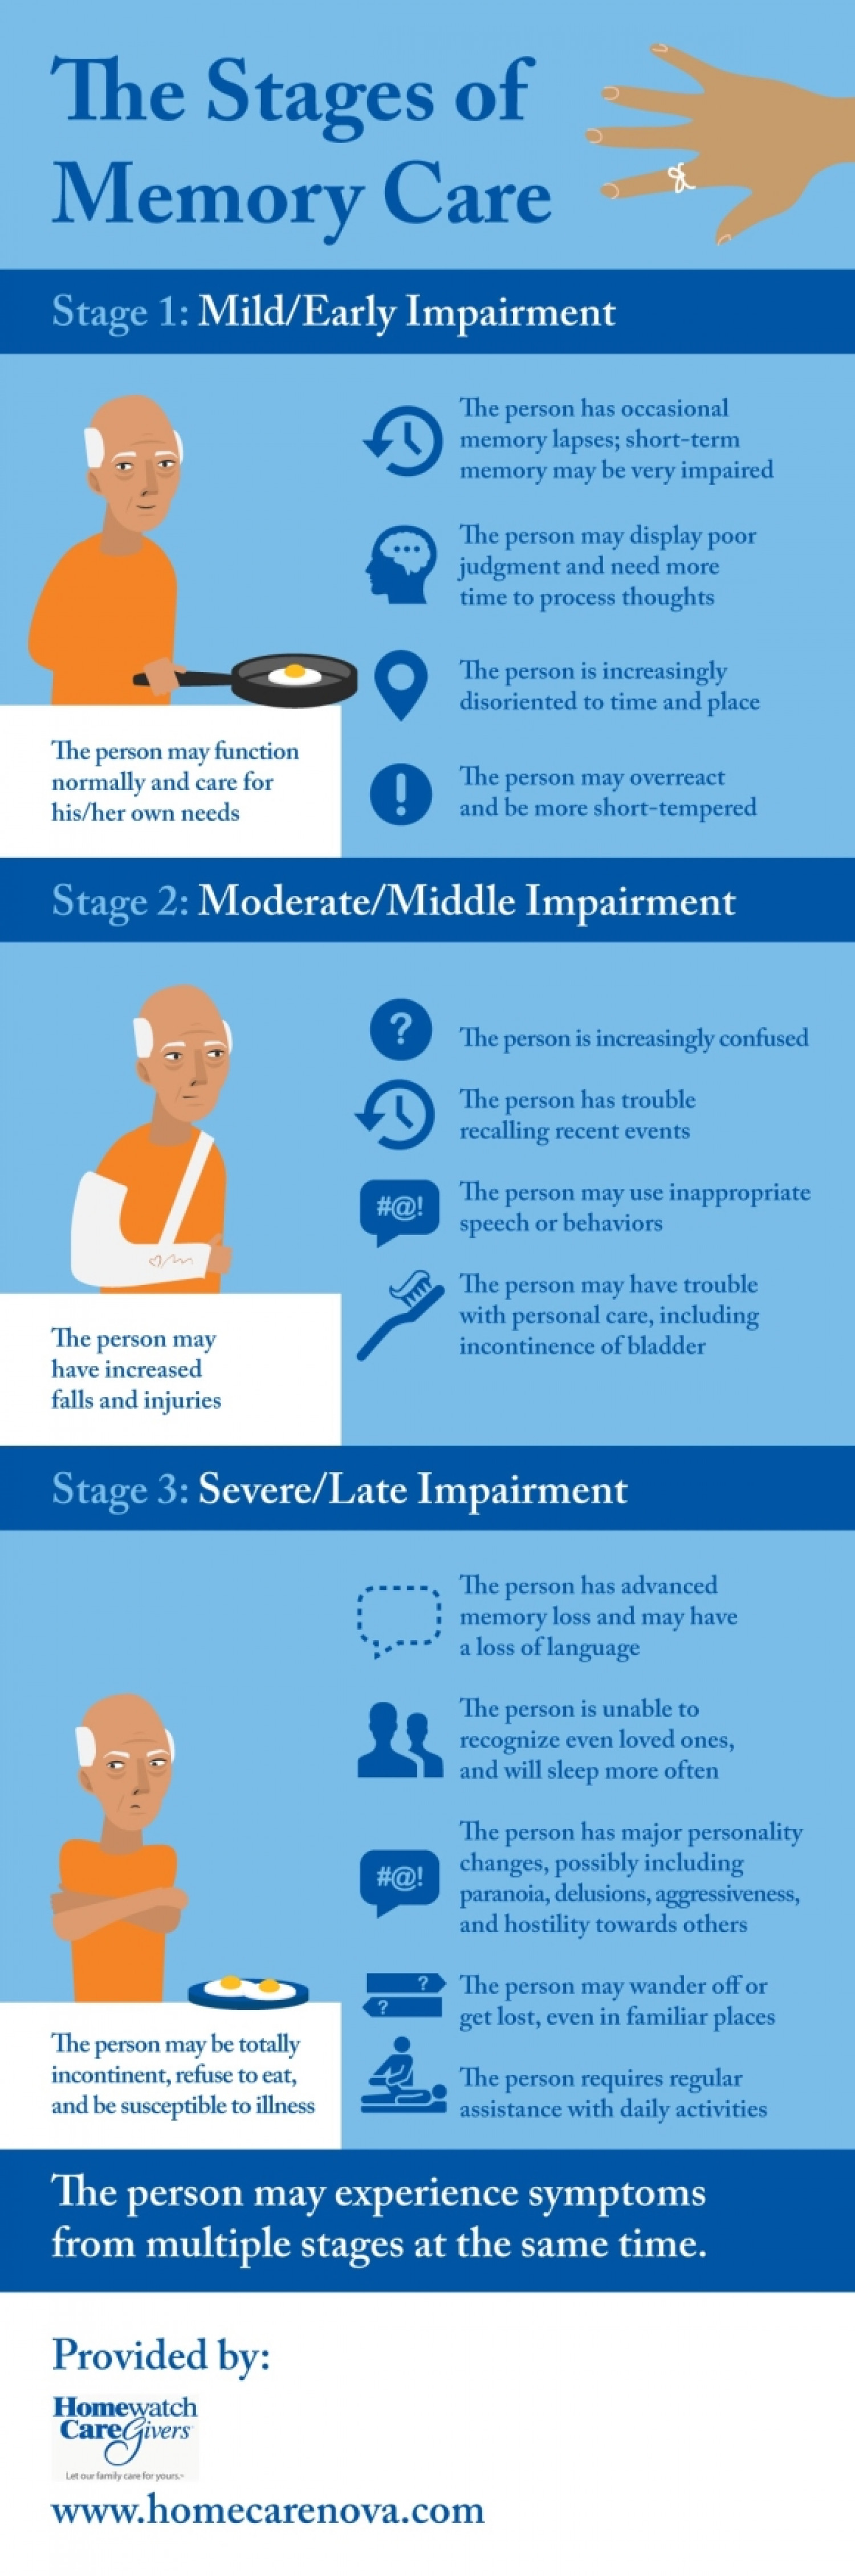 The Stages of Memory Care Infographic